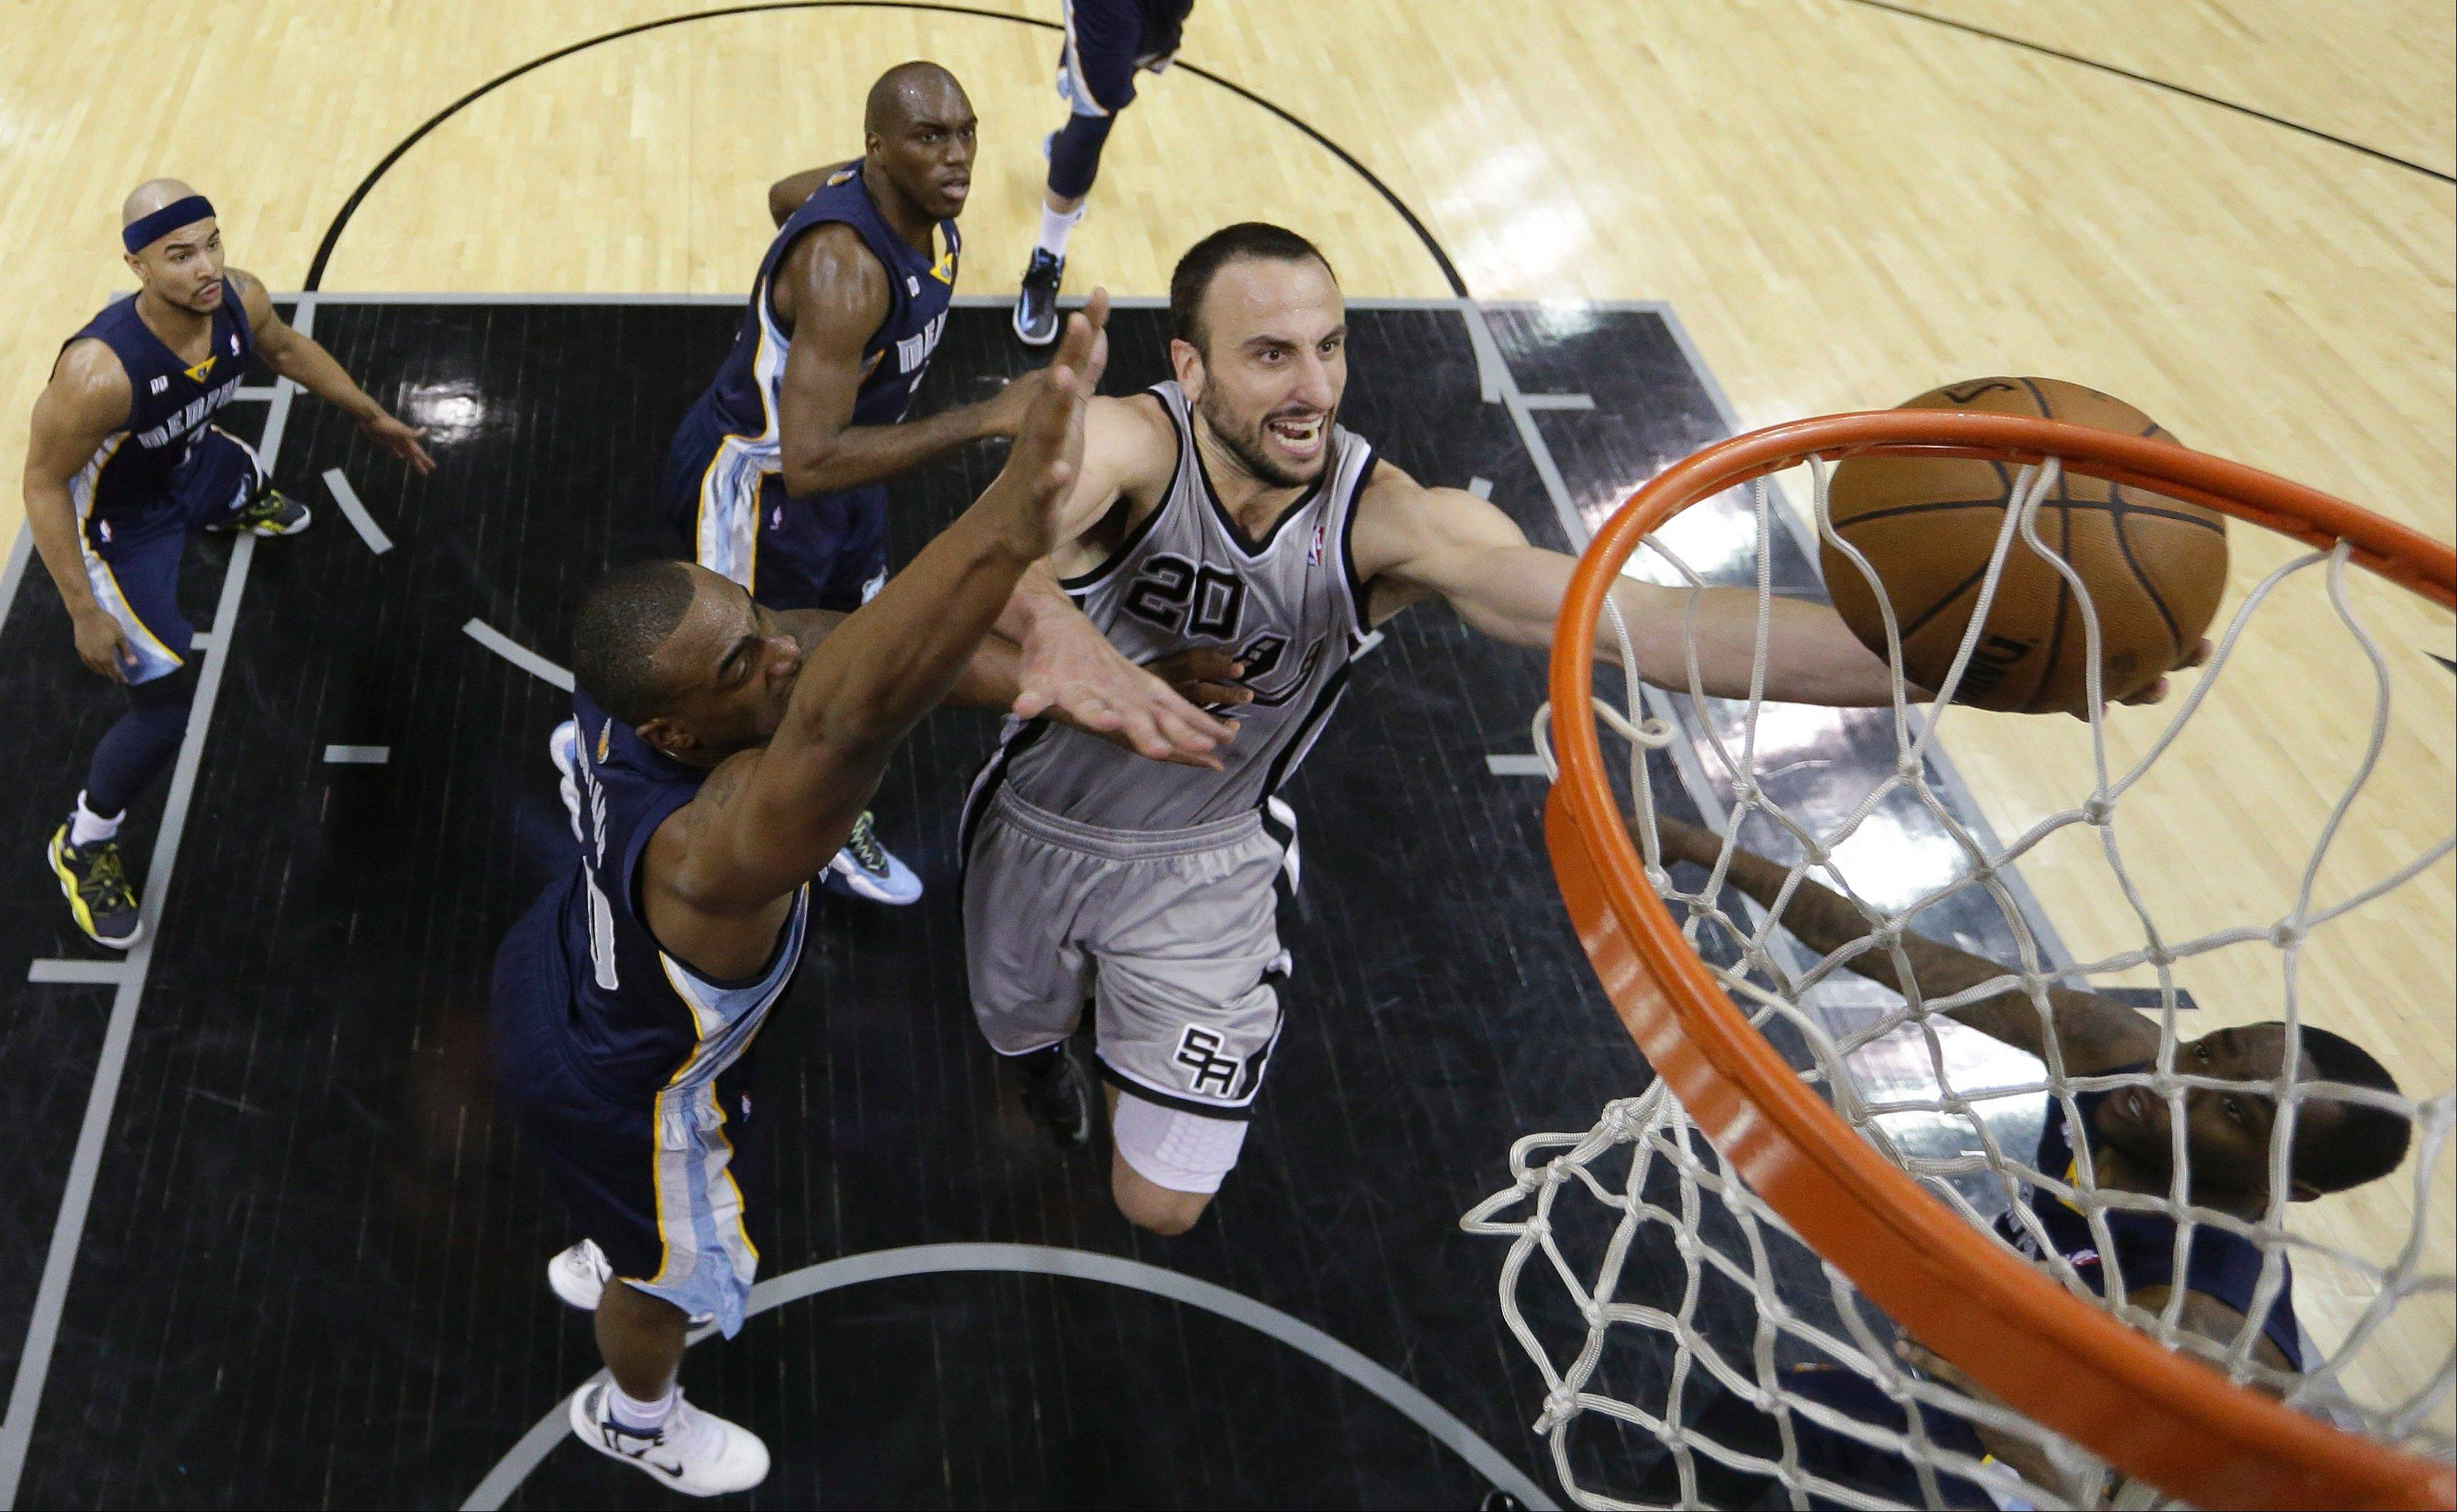 San Antonio Spurs� Manu Ginobili (20), of Argentina, drives to the basket as Memphis Grizzlies� Darrell Arthur, left, defends him during the second half in Game 1 of a Western Conference Finals NBA basketball playoff series, Sunday, May 19, 2013, in San Antonio. San Antonio won 105-83.